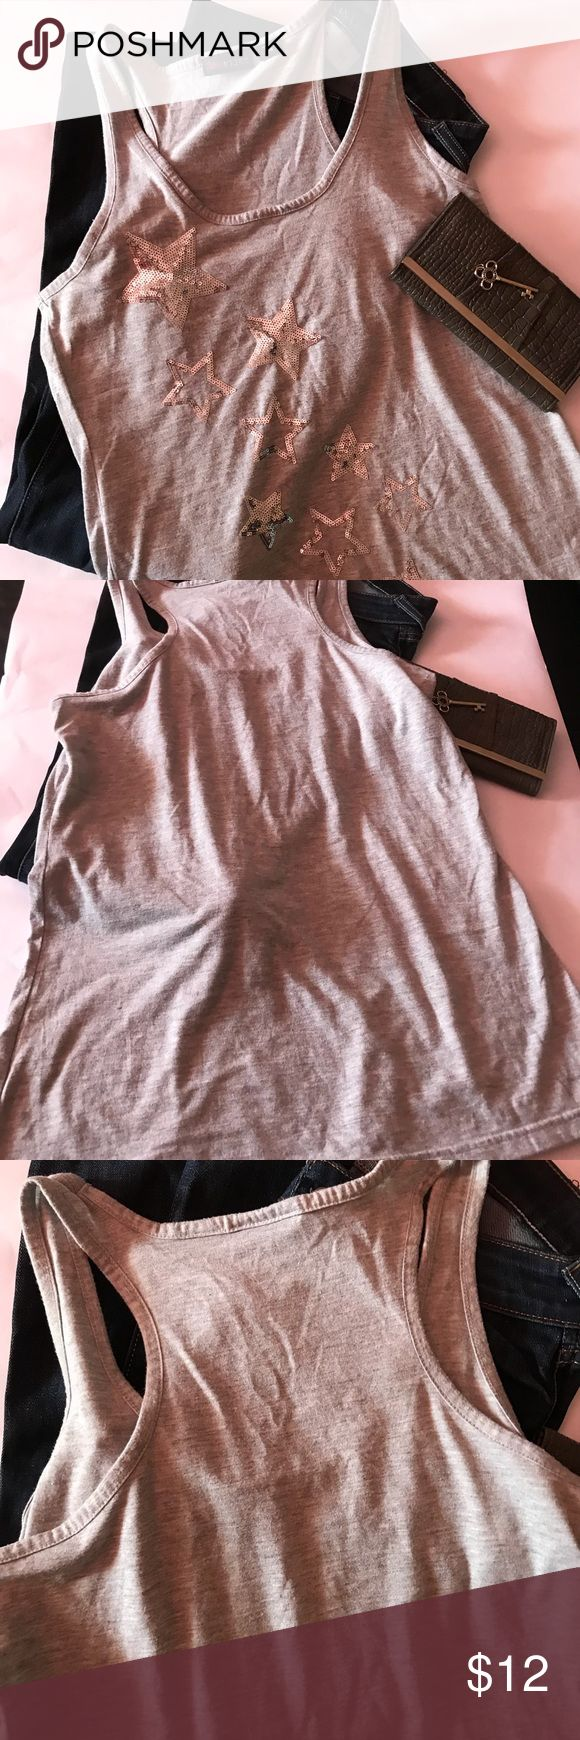 Super Star Silver Sequined Top by Ultra Flirt L In gently used condition size large Top. No rips or stains. By Ultraflirt Stars with Sequins Design 🚭 from a Smoke Free 🐕 No Pets in Home  ⭐️⭐️⭐️⭐️⭐️Top rated Seller 🎥 Scam Alert-All Items are inspected and videotaped for a fair transaction; if there is a damage/defect it will be noted. 💕Posh Blessings Your Way for Smooth Transaction💕 🌸Thank You for stopping by our closet Ultra Flirt Tops Tank Tops